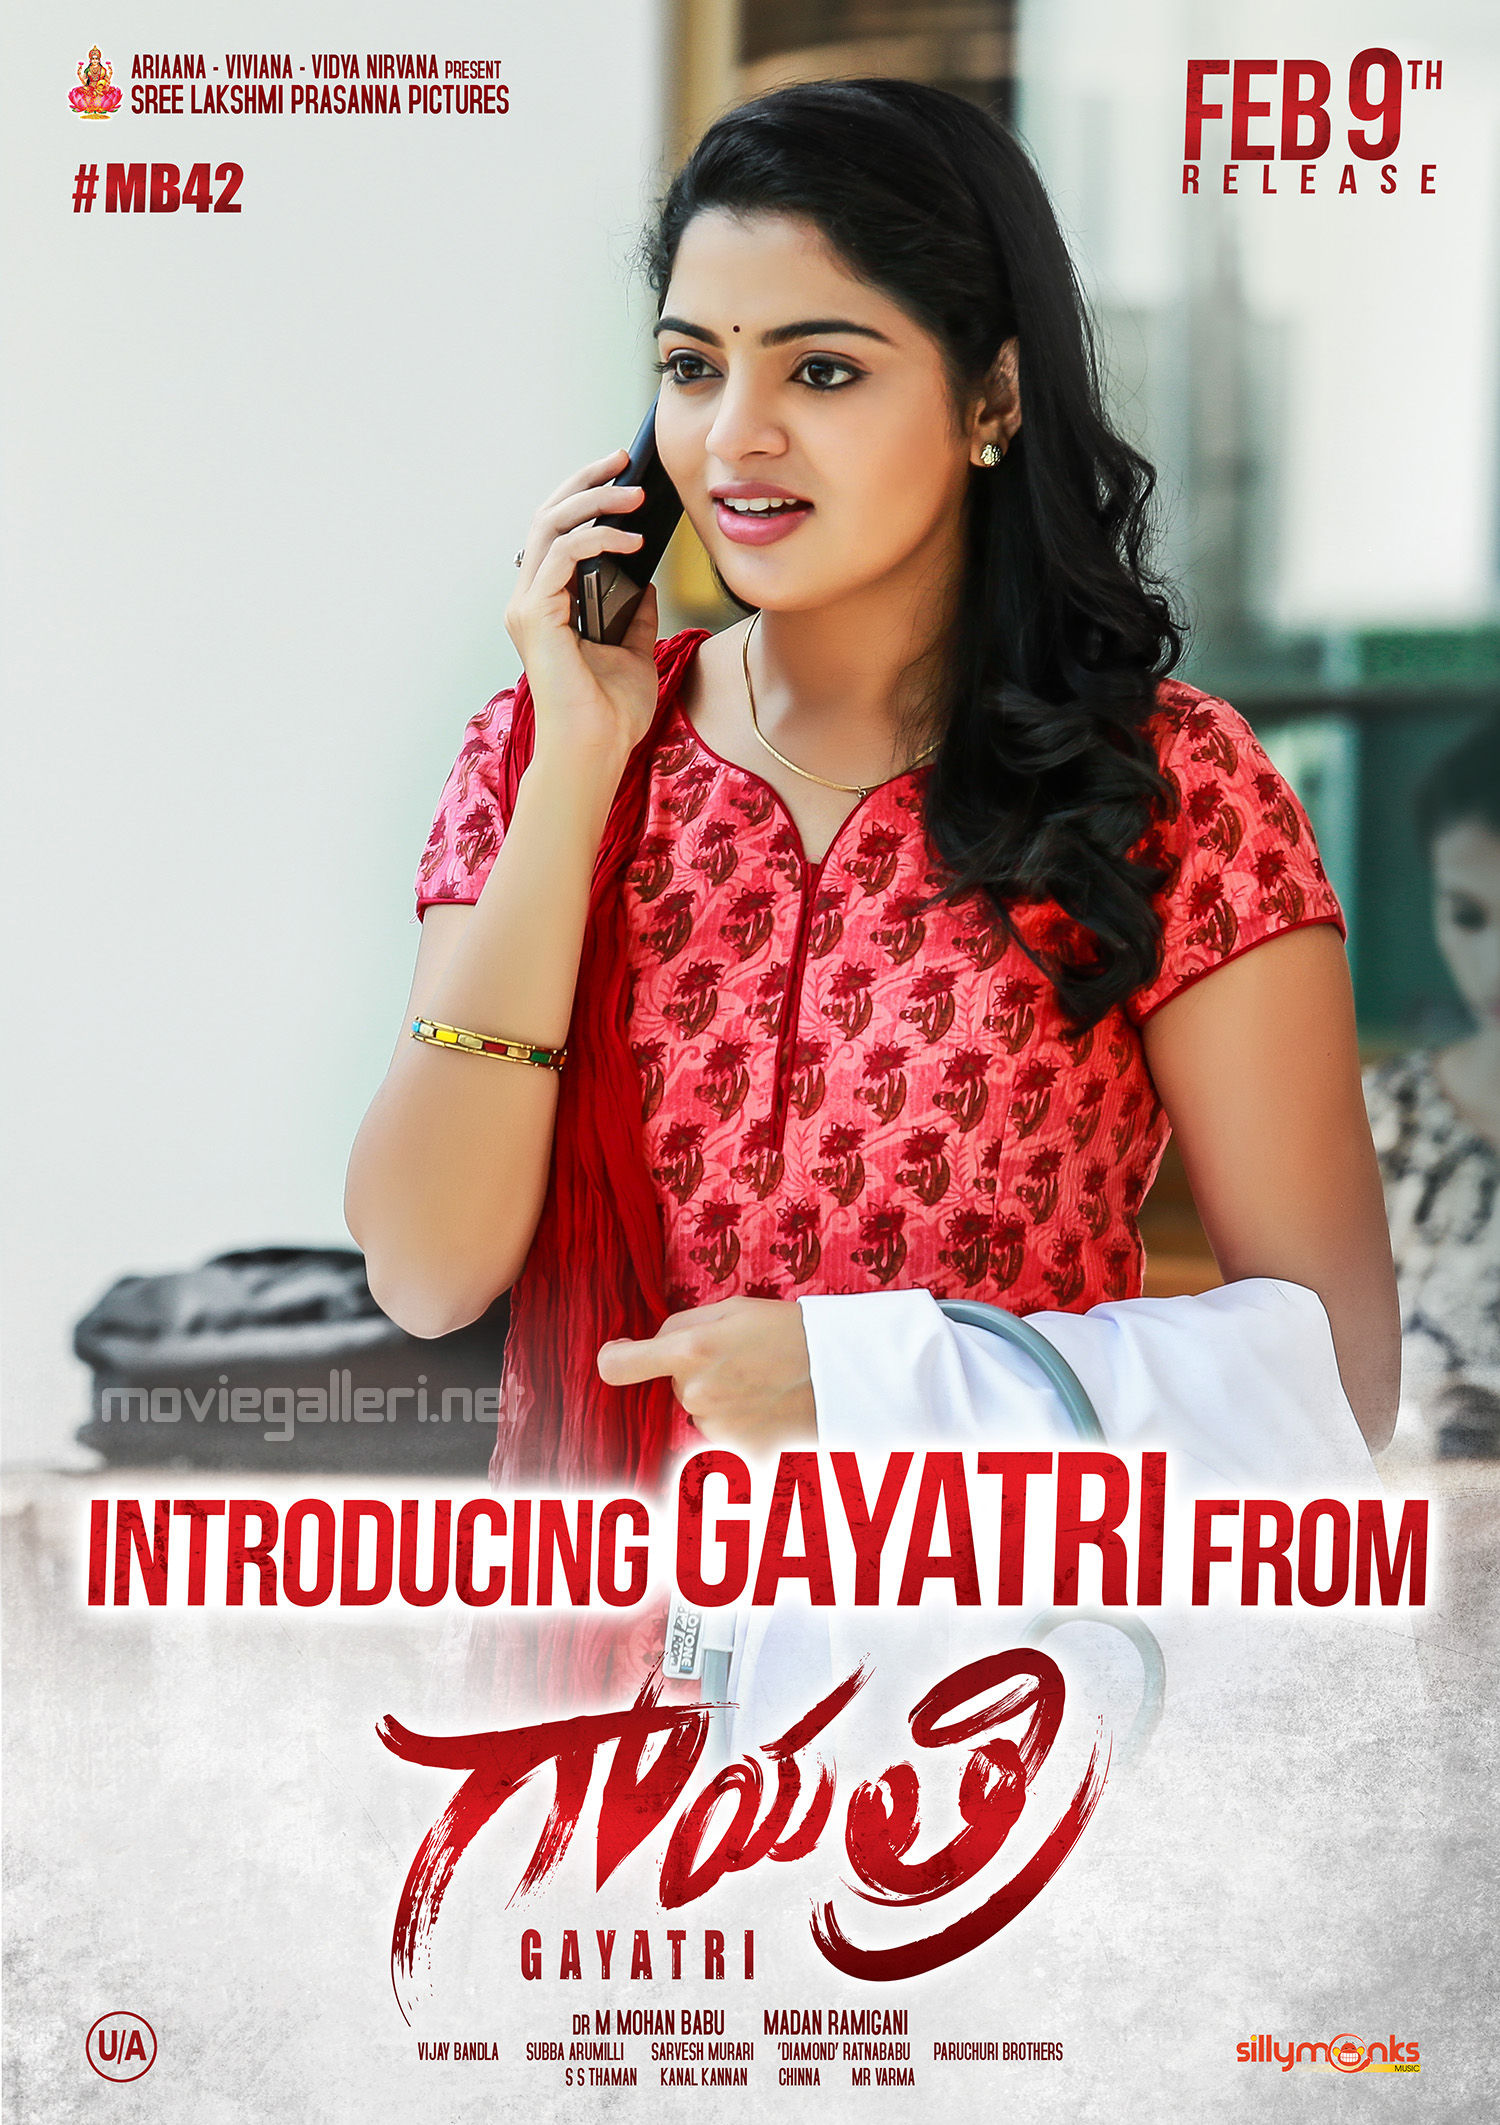 Actress Nikhila Vimal Introducing Gayatri from Gayatri movie Poster HD